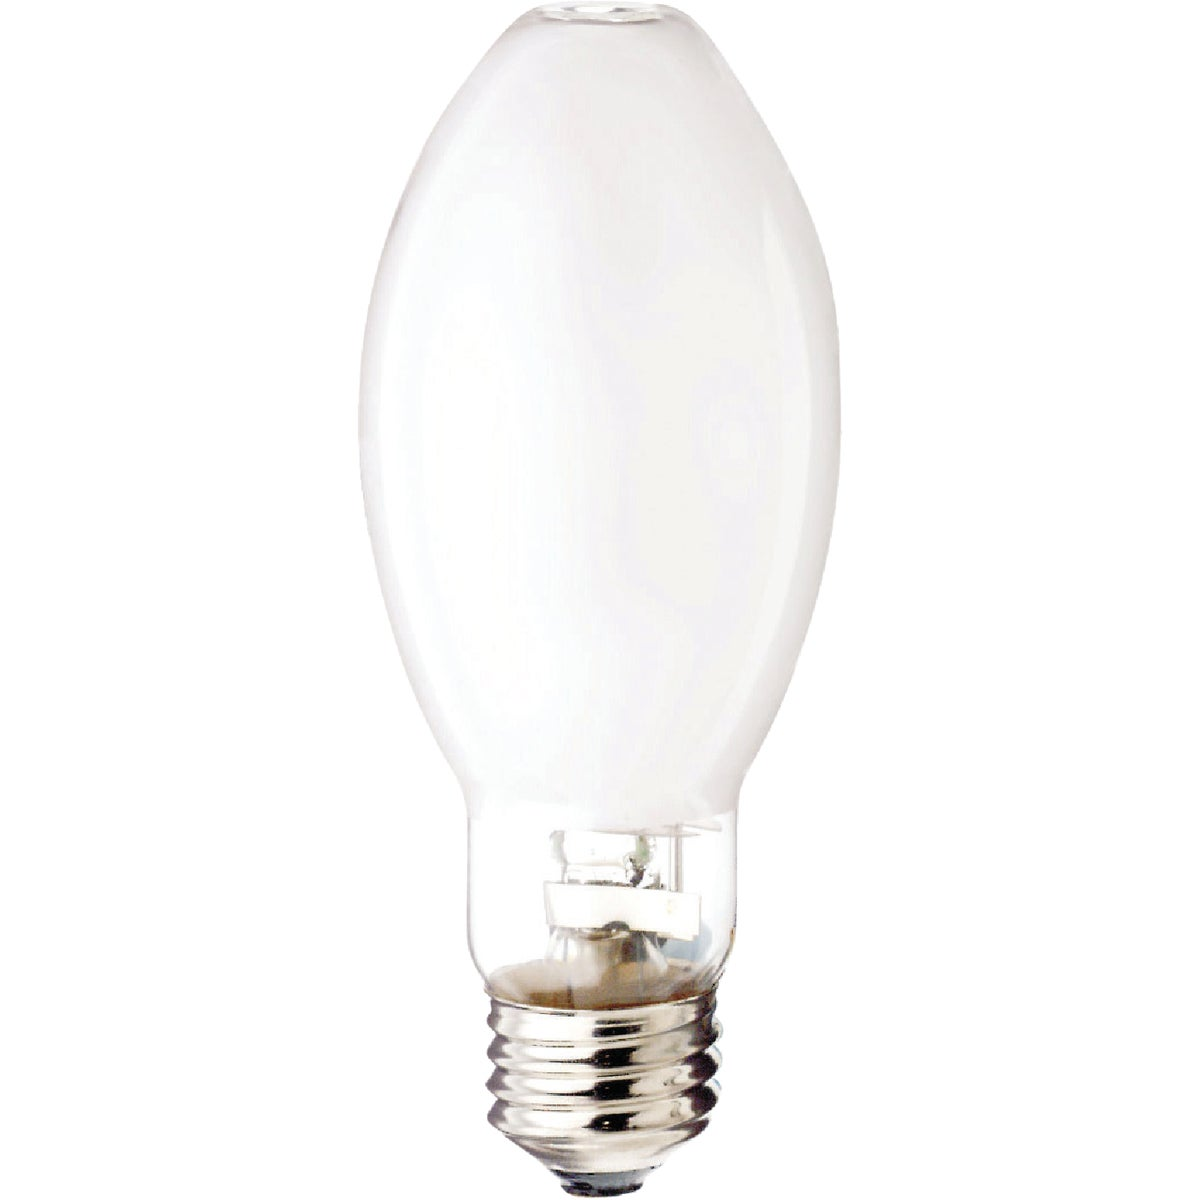 175W METAL HALIDE BULB - 26432 by G E Lighting Incom